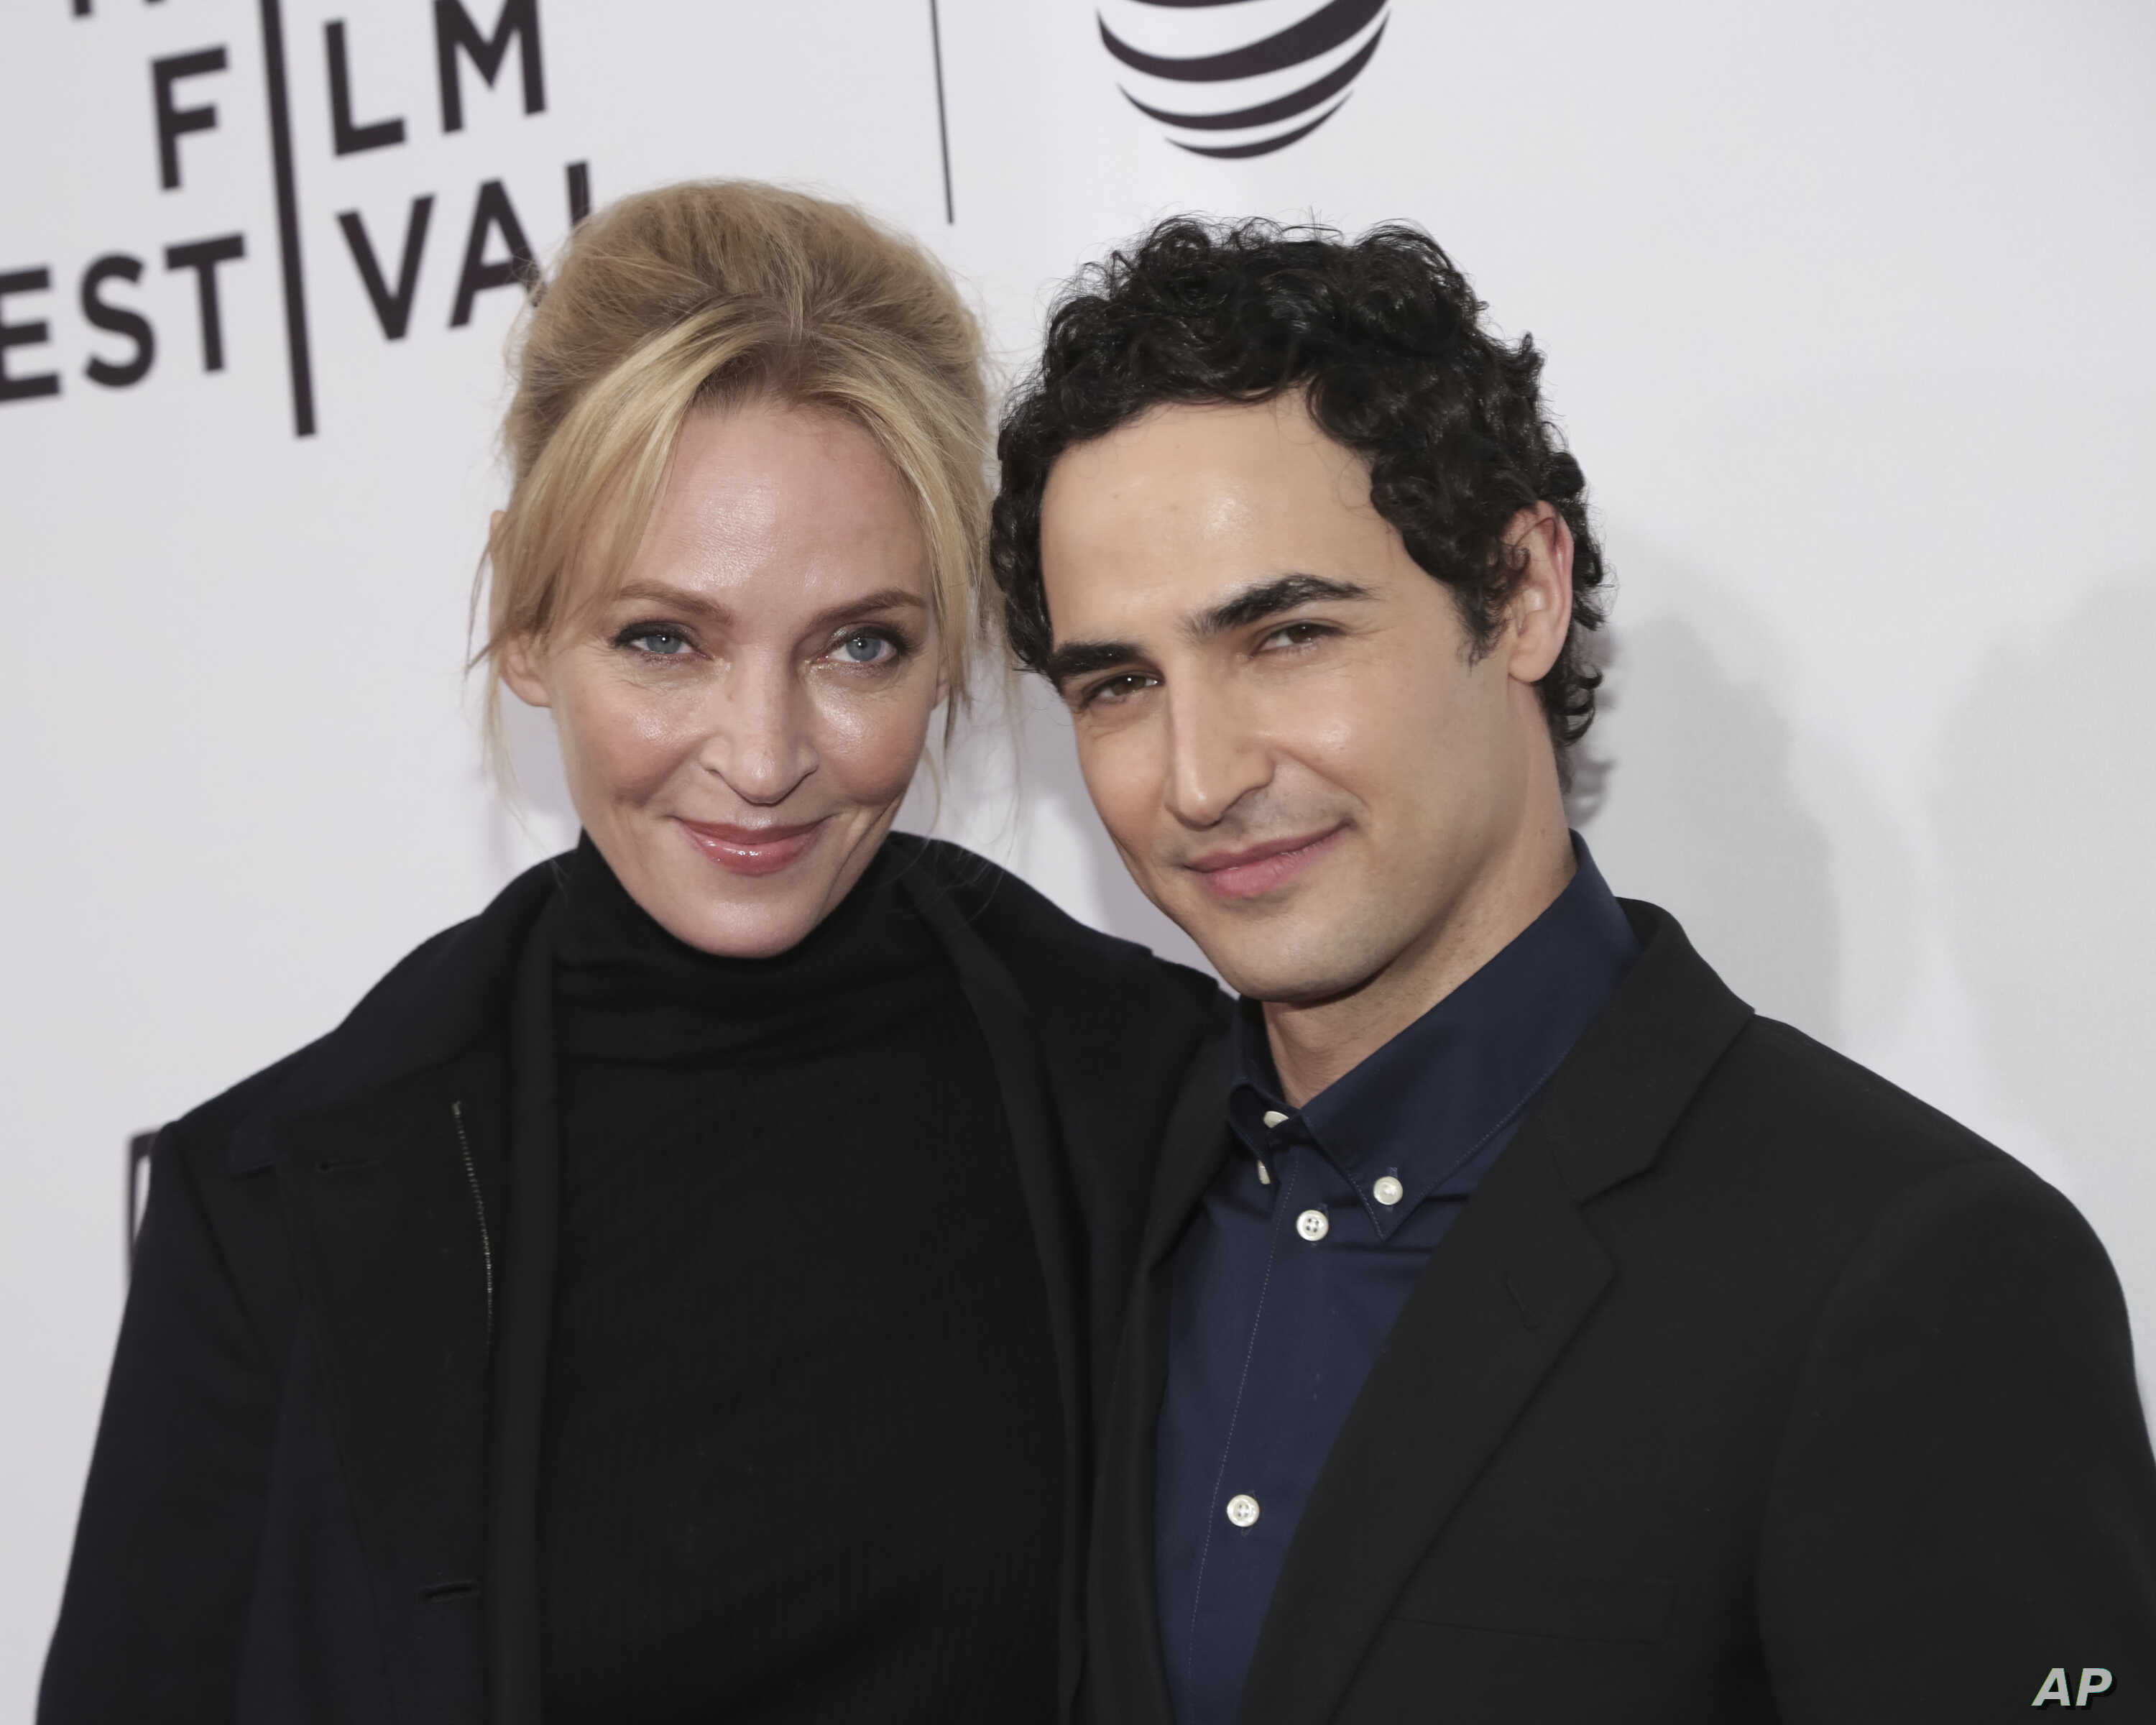 Zac Posen The Comeback Kid Featured In New Documentary Voice Of America English